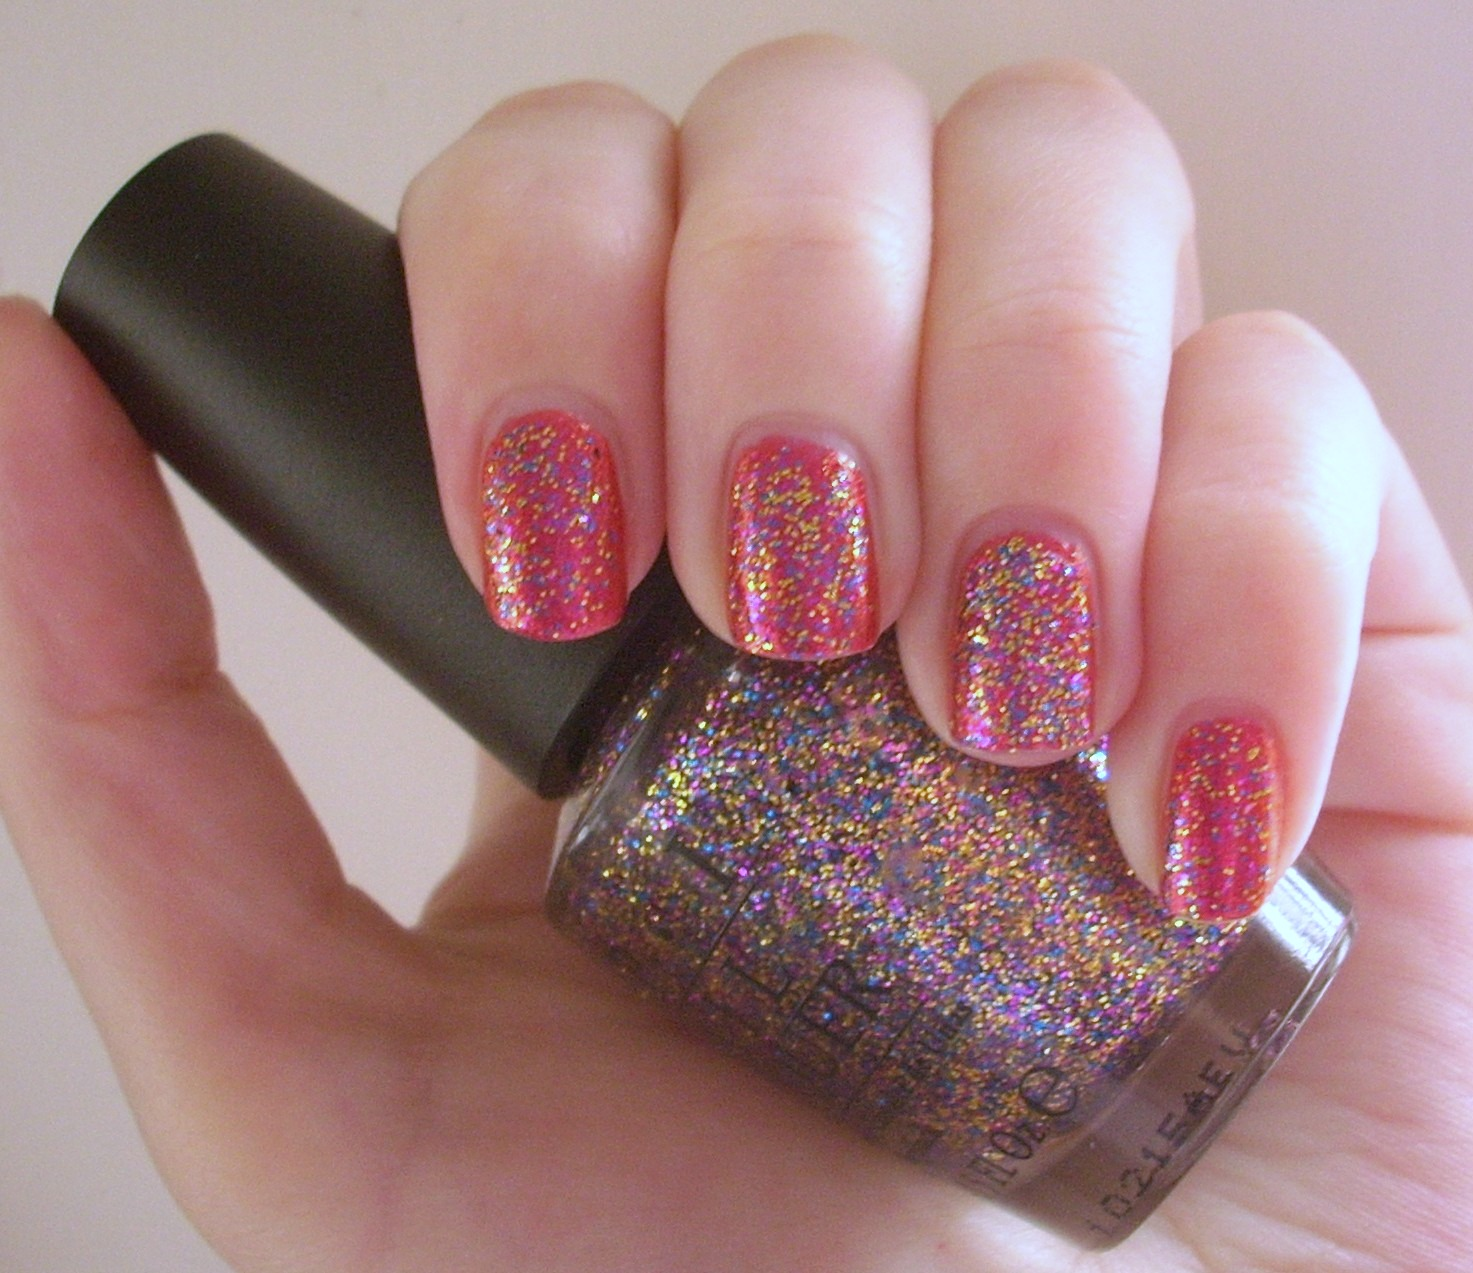 OPI Sparkle-licious nail polish review | Through The Looking Glass